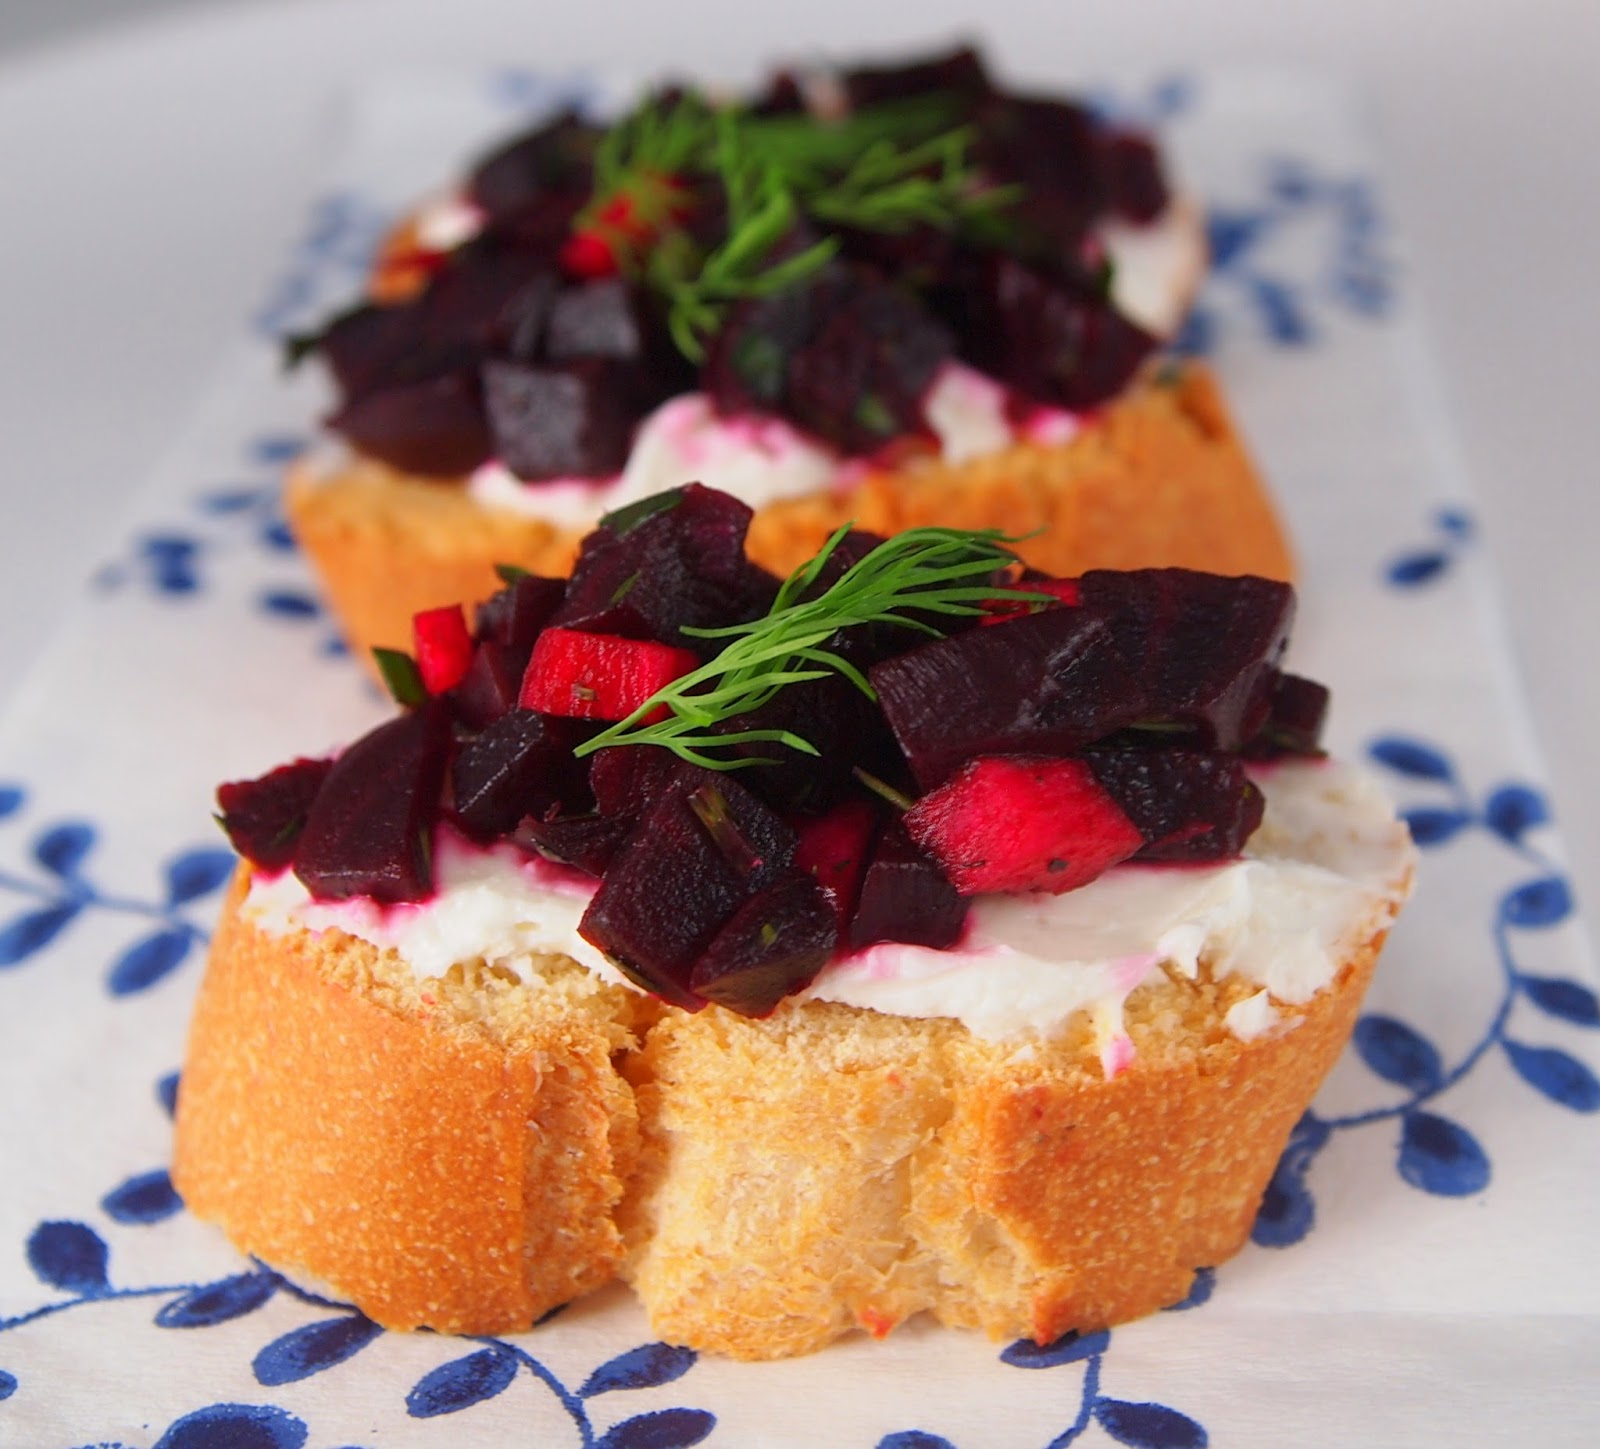 Beet & Goat Cheese Bruschetta with Fresh Herbs